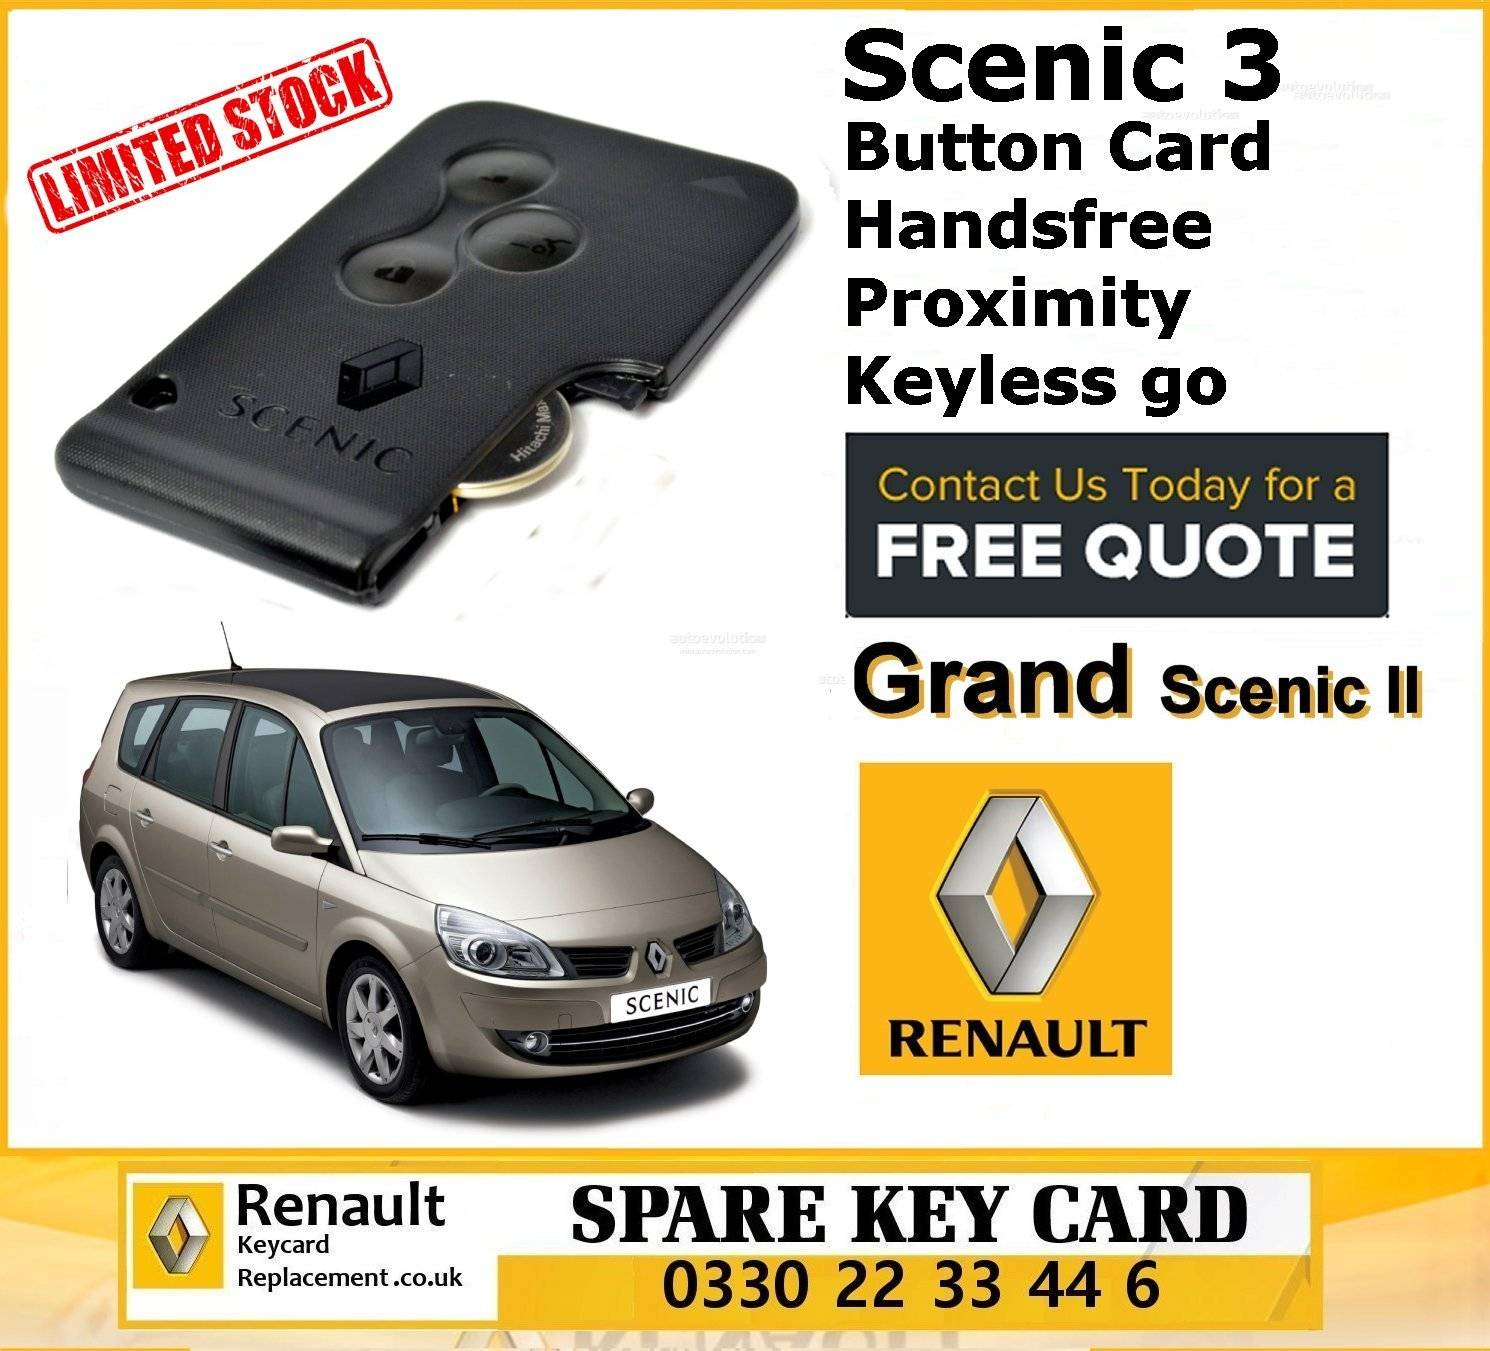 Renault Grand Scenic 2003 - 2008 programming repair services manchester replacement keycards